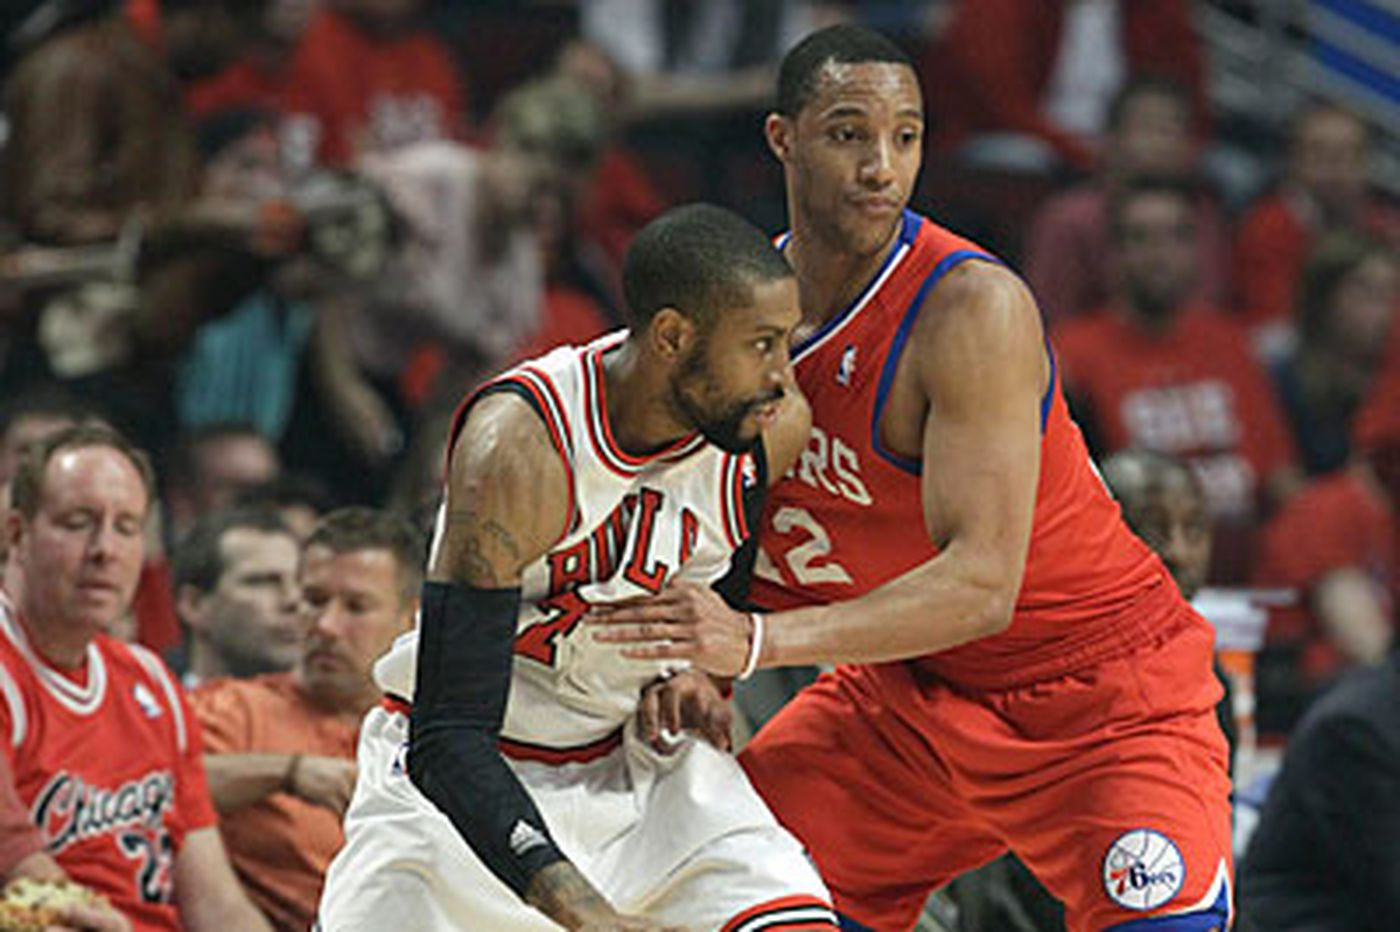 Collins' adjustments were key to Sixers' Game 2 win over Bulls